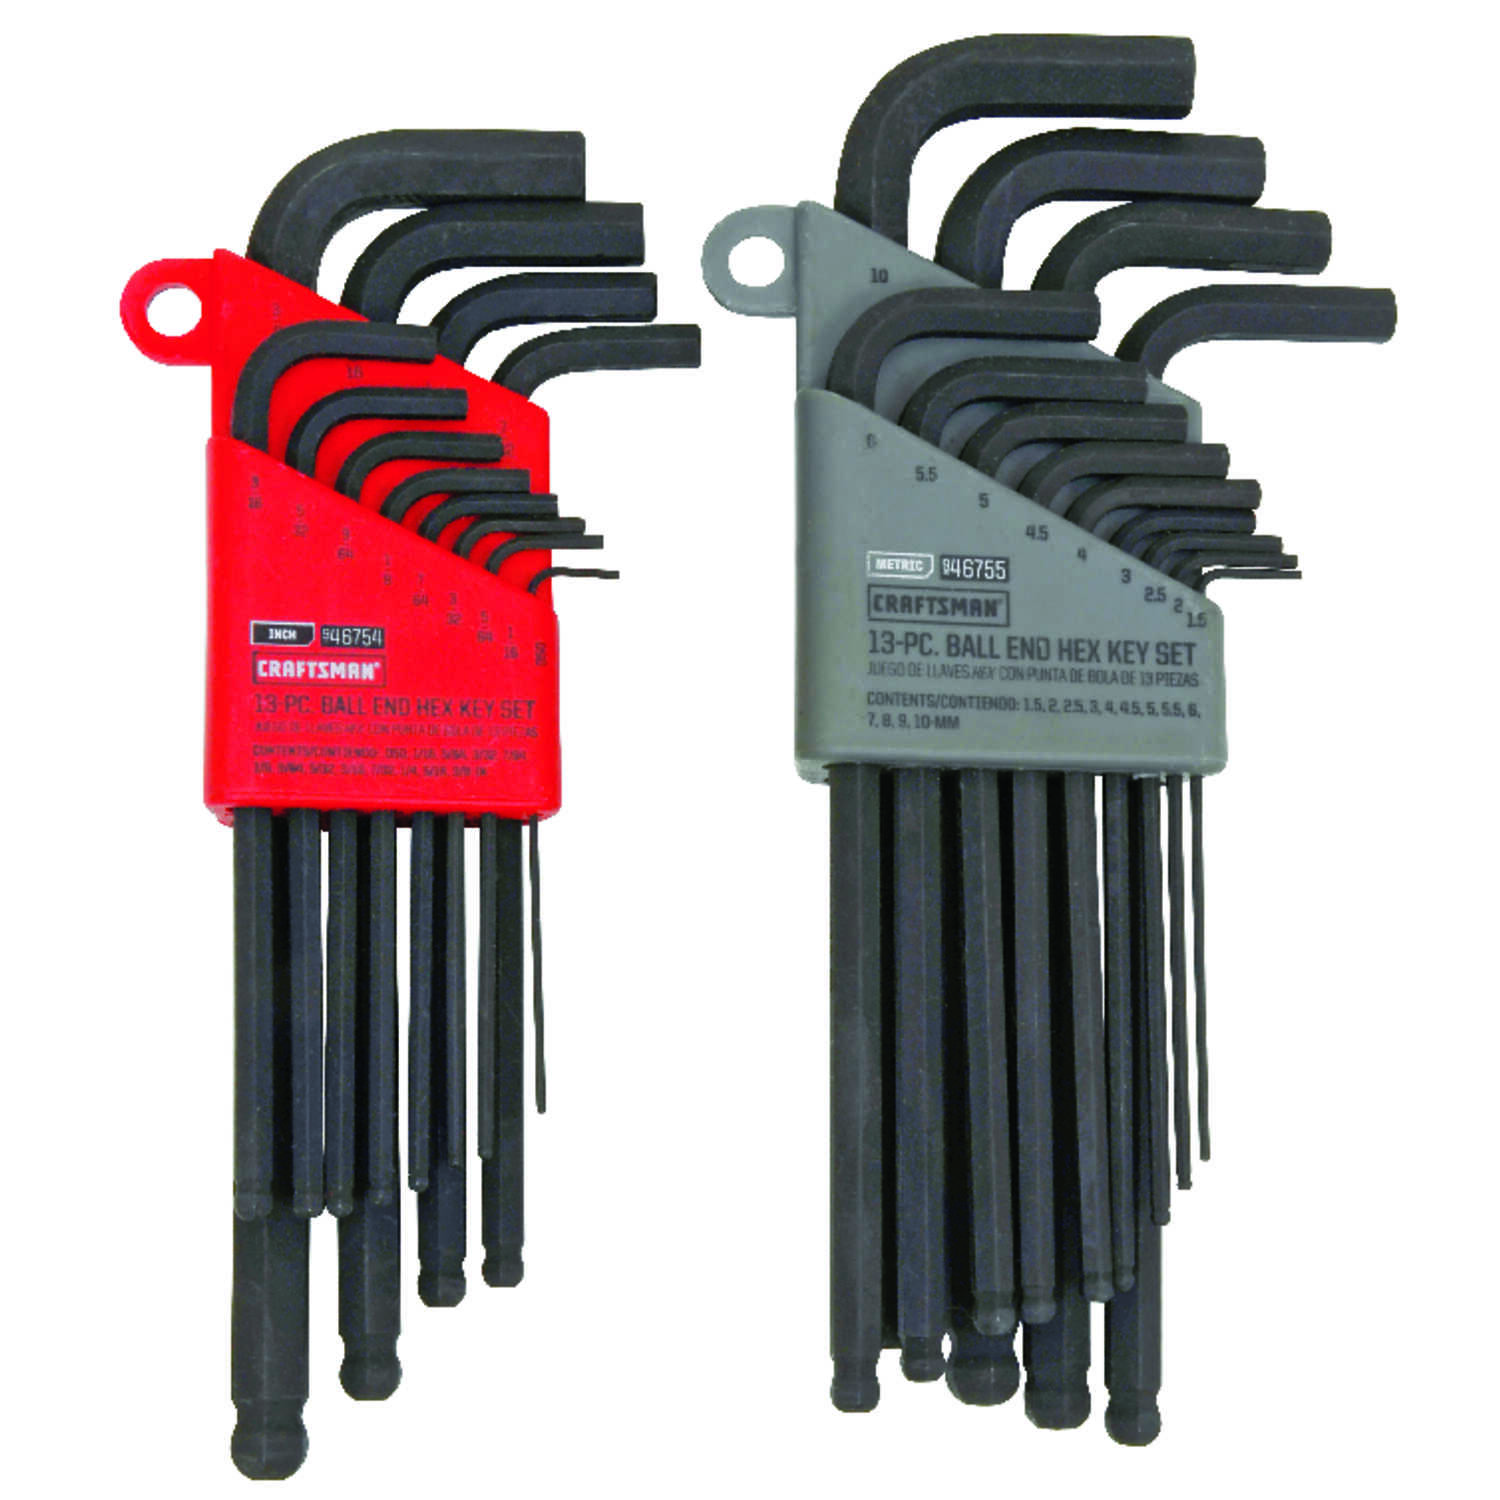 Craftsman  1/4  Metric and SAE  Long and Short Arm  Ball End Hex Key Set  13 in. 26 pc.